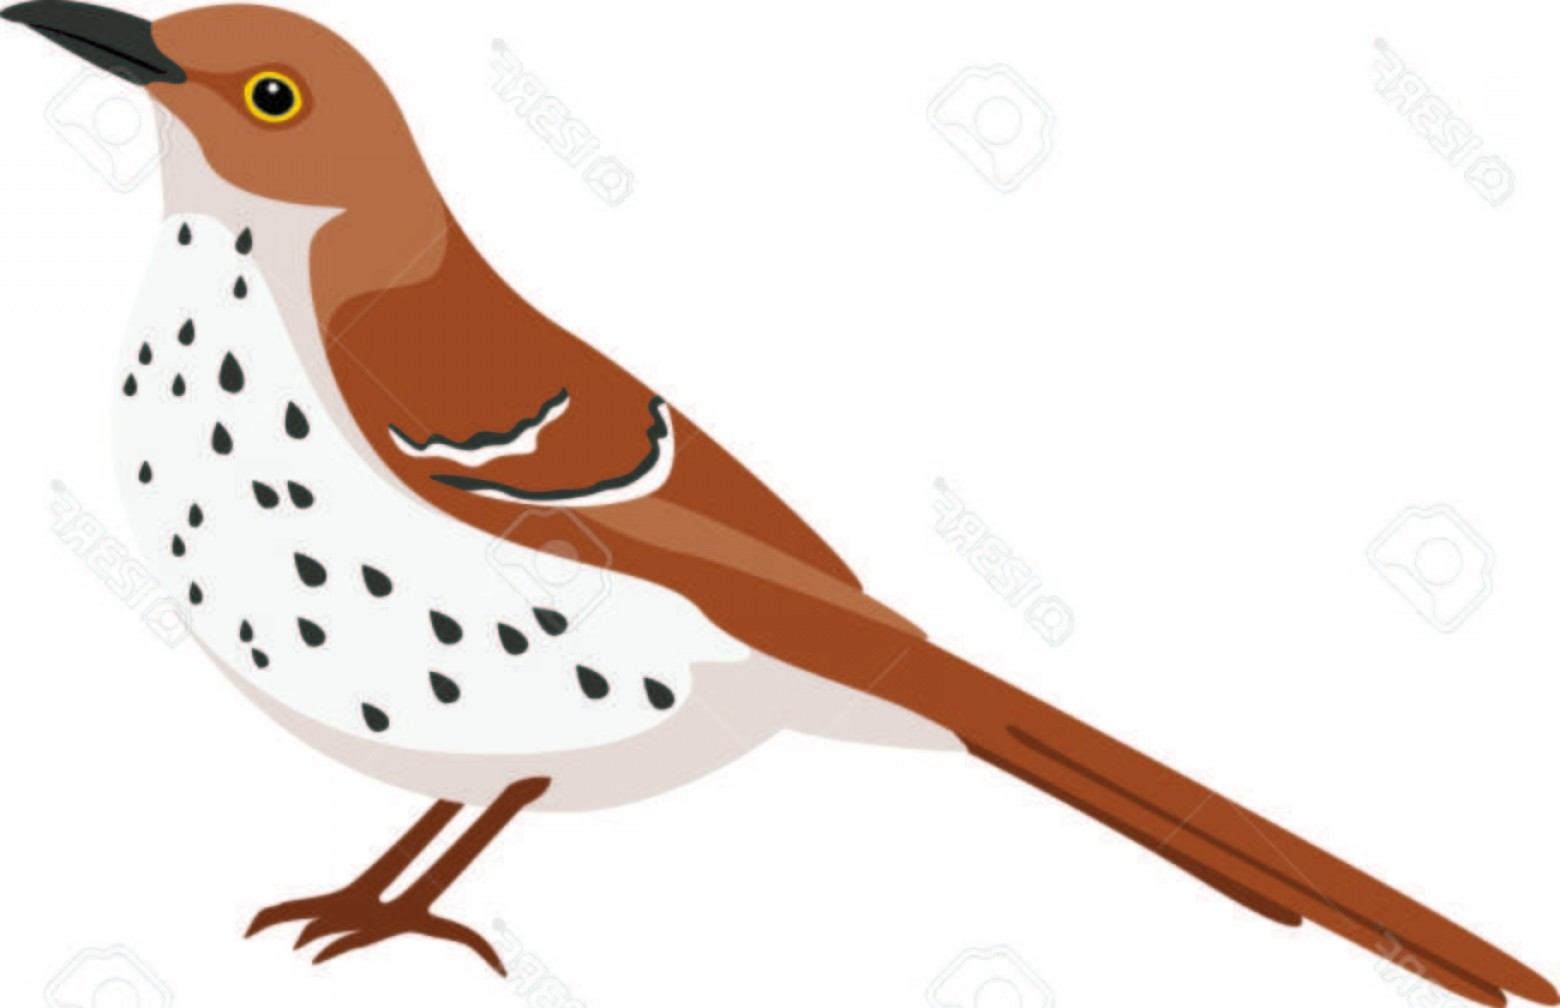 Thrasher Vector: Photostock Vector Use This Image Of A Thrasher In Your Next Design